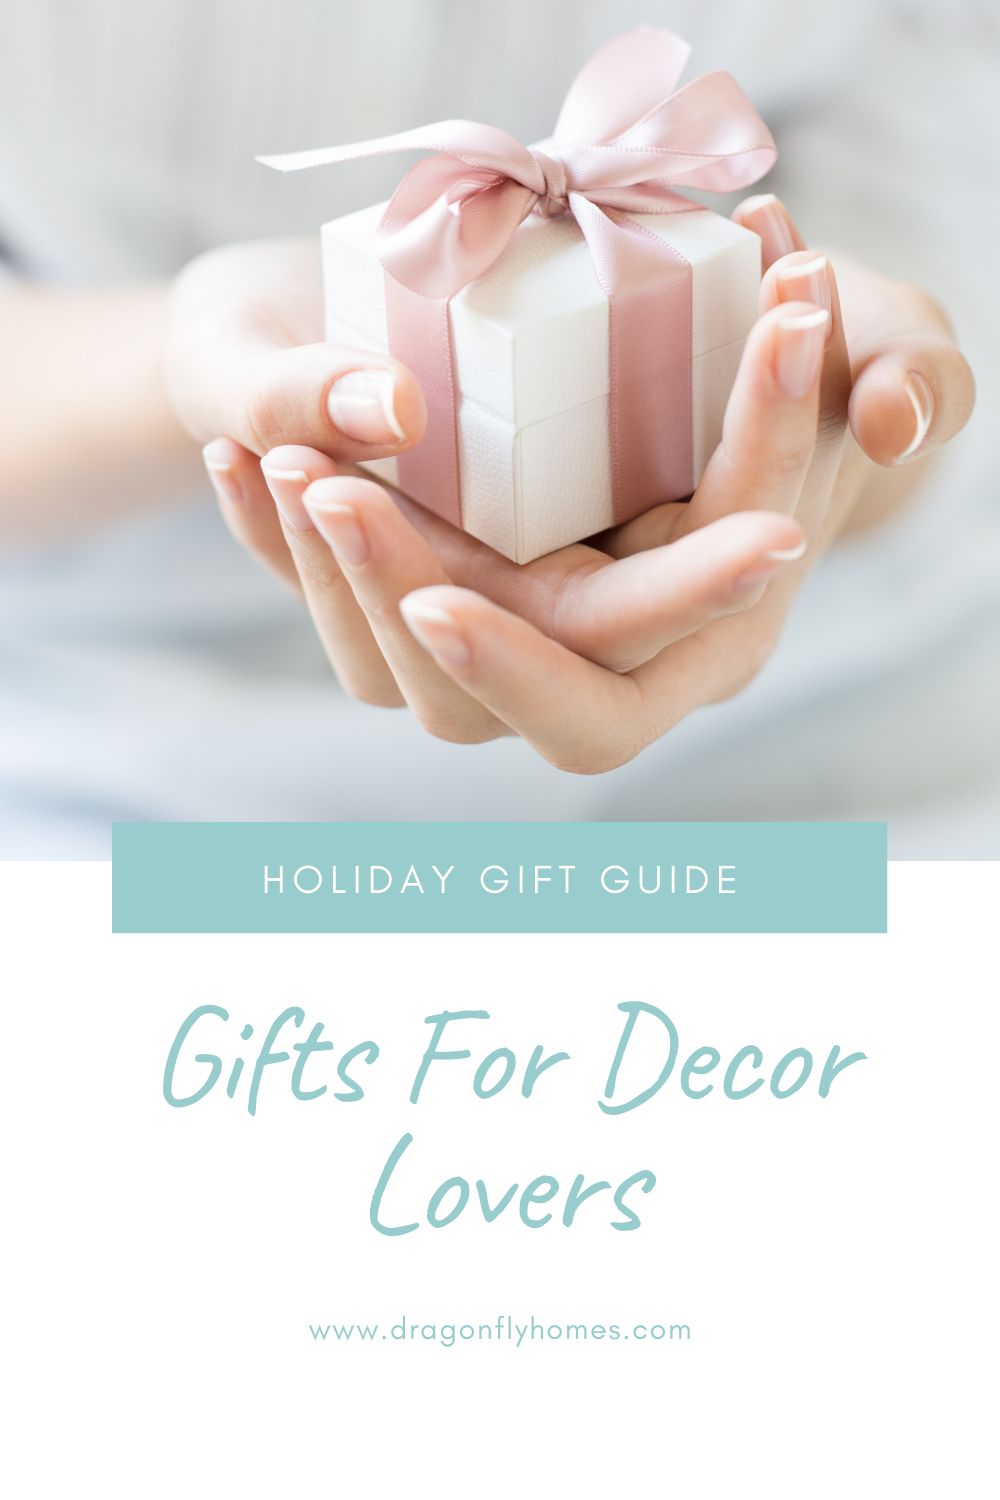 Gifts for Decor Lovers by Dragonfly Homes